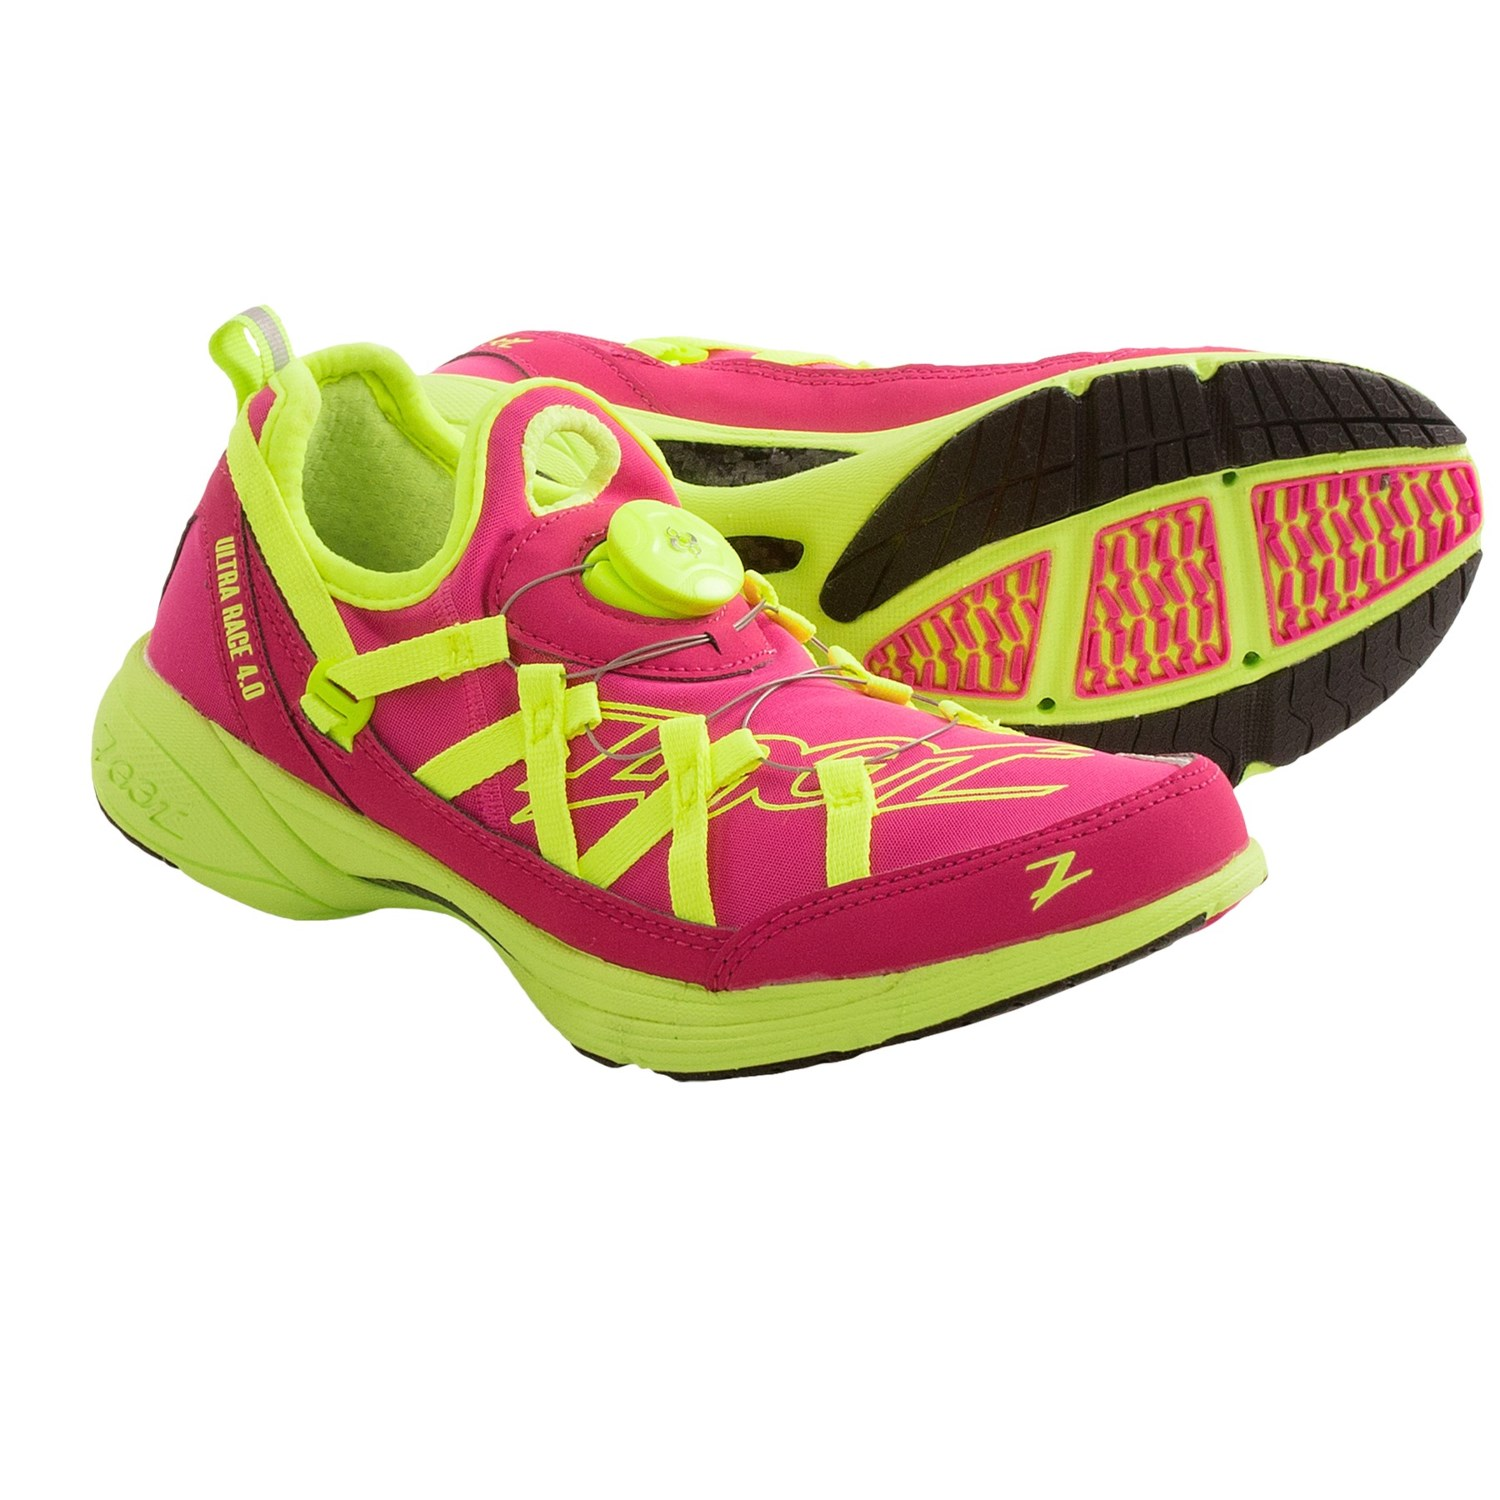 Women's Shoes | Women's Ultra Race 4.0